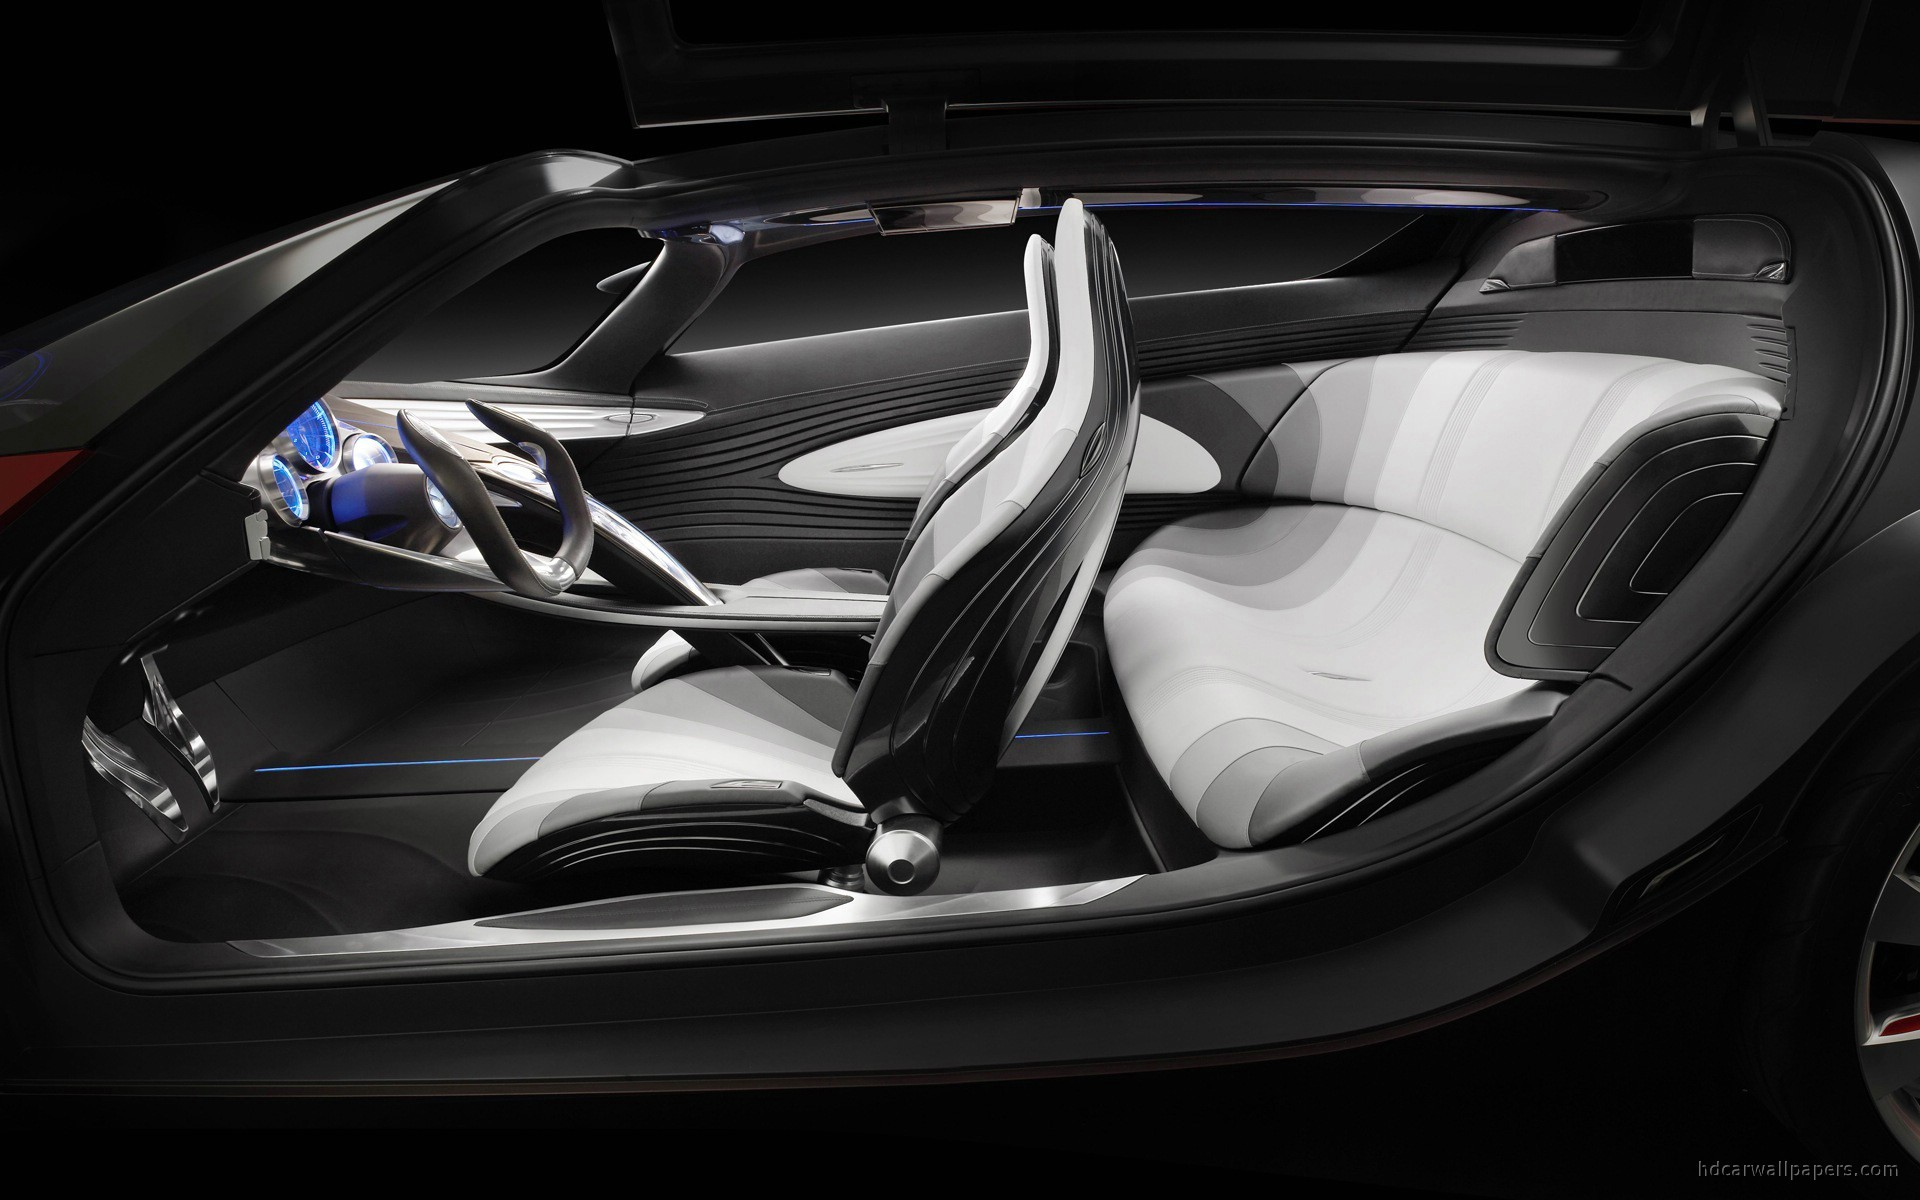 Mazda Cx 3 >> Mazda Ryuga Concept Interior Wallpaper | HD Car Wallpapers ...